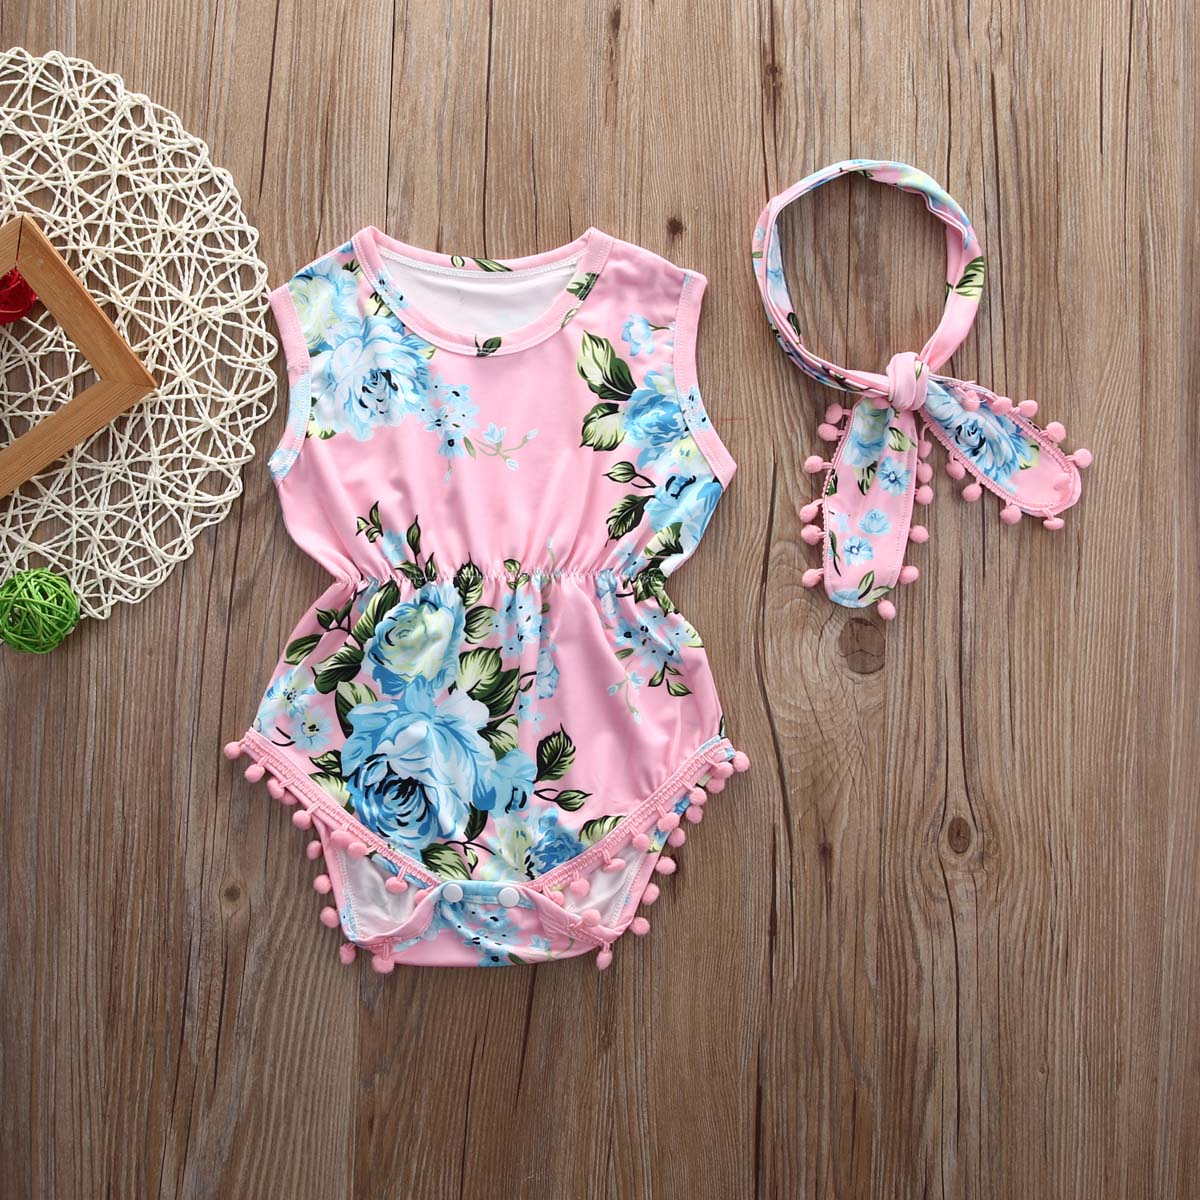 Womail Fashion Newborn Infant Baby Girls Clothes Sleeveless Floral Romper Jumpsuit Outfits Clothing